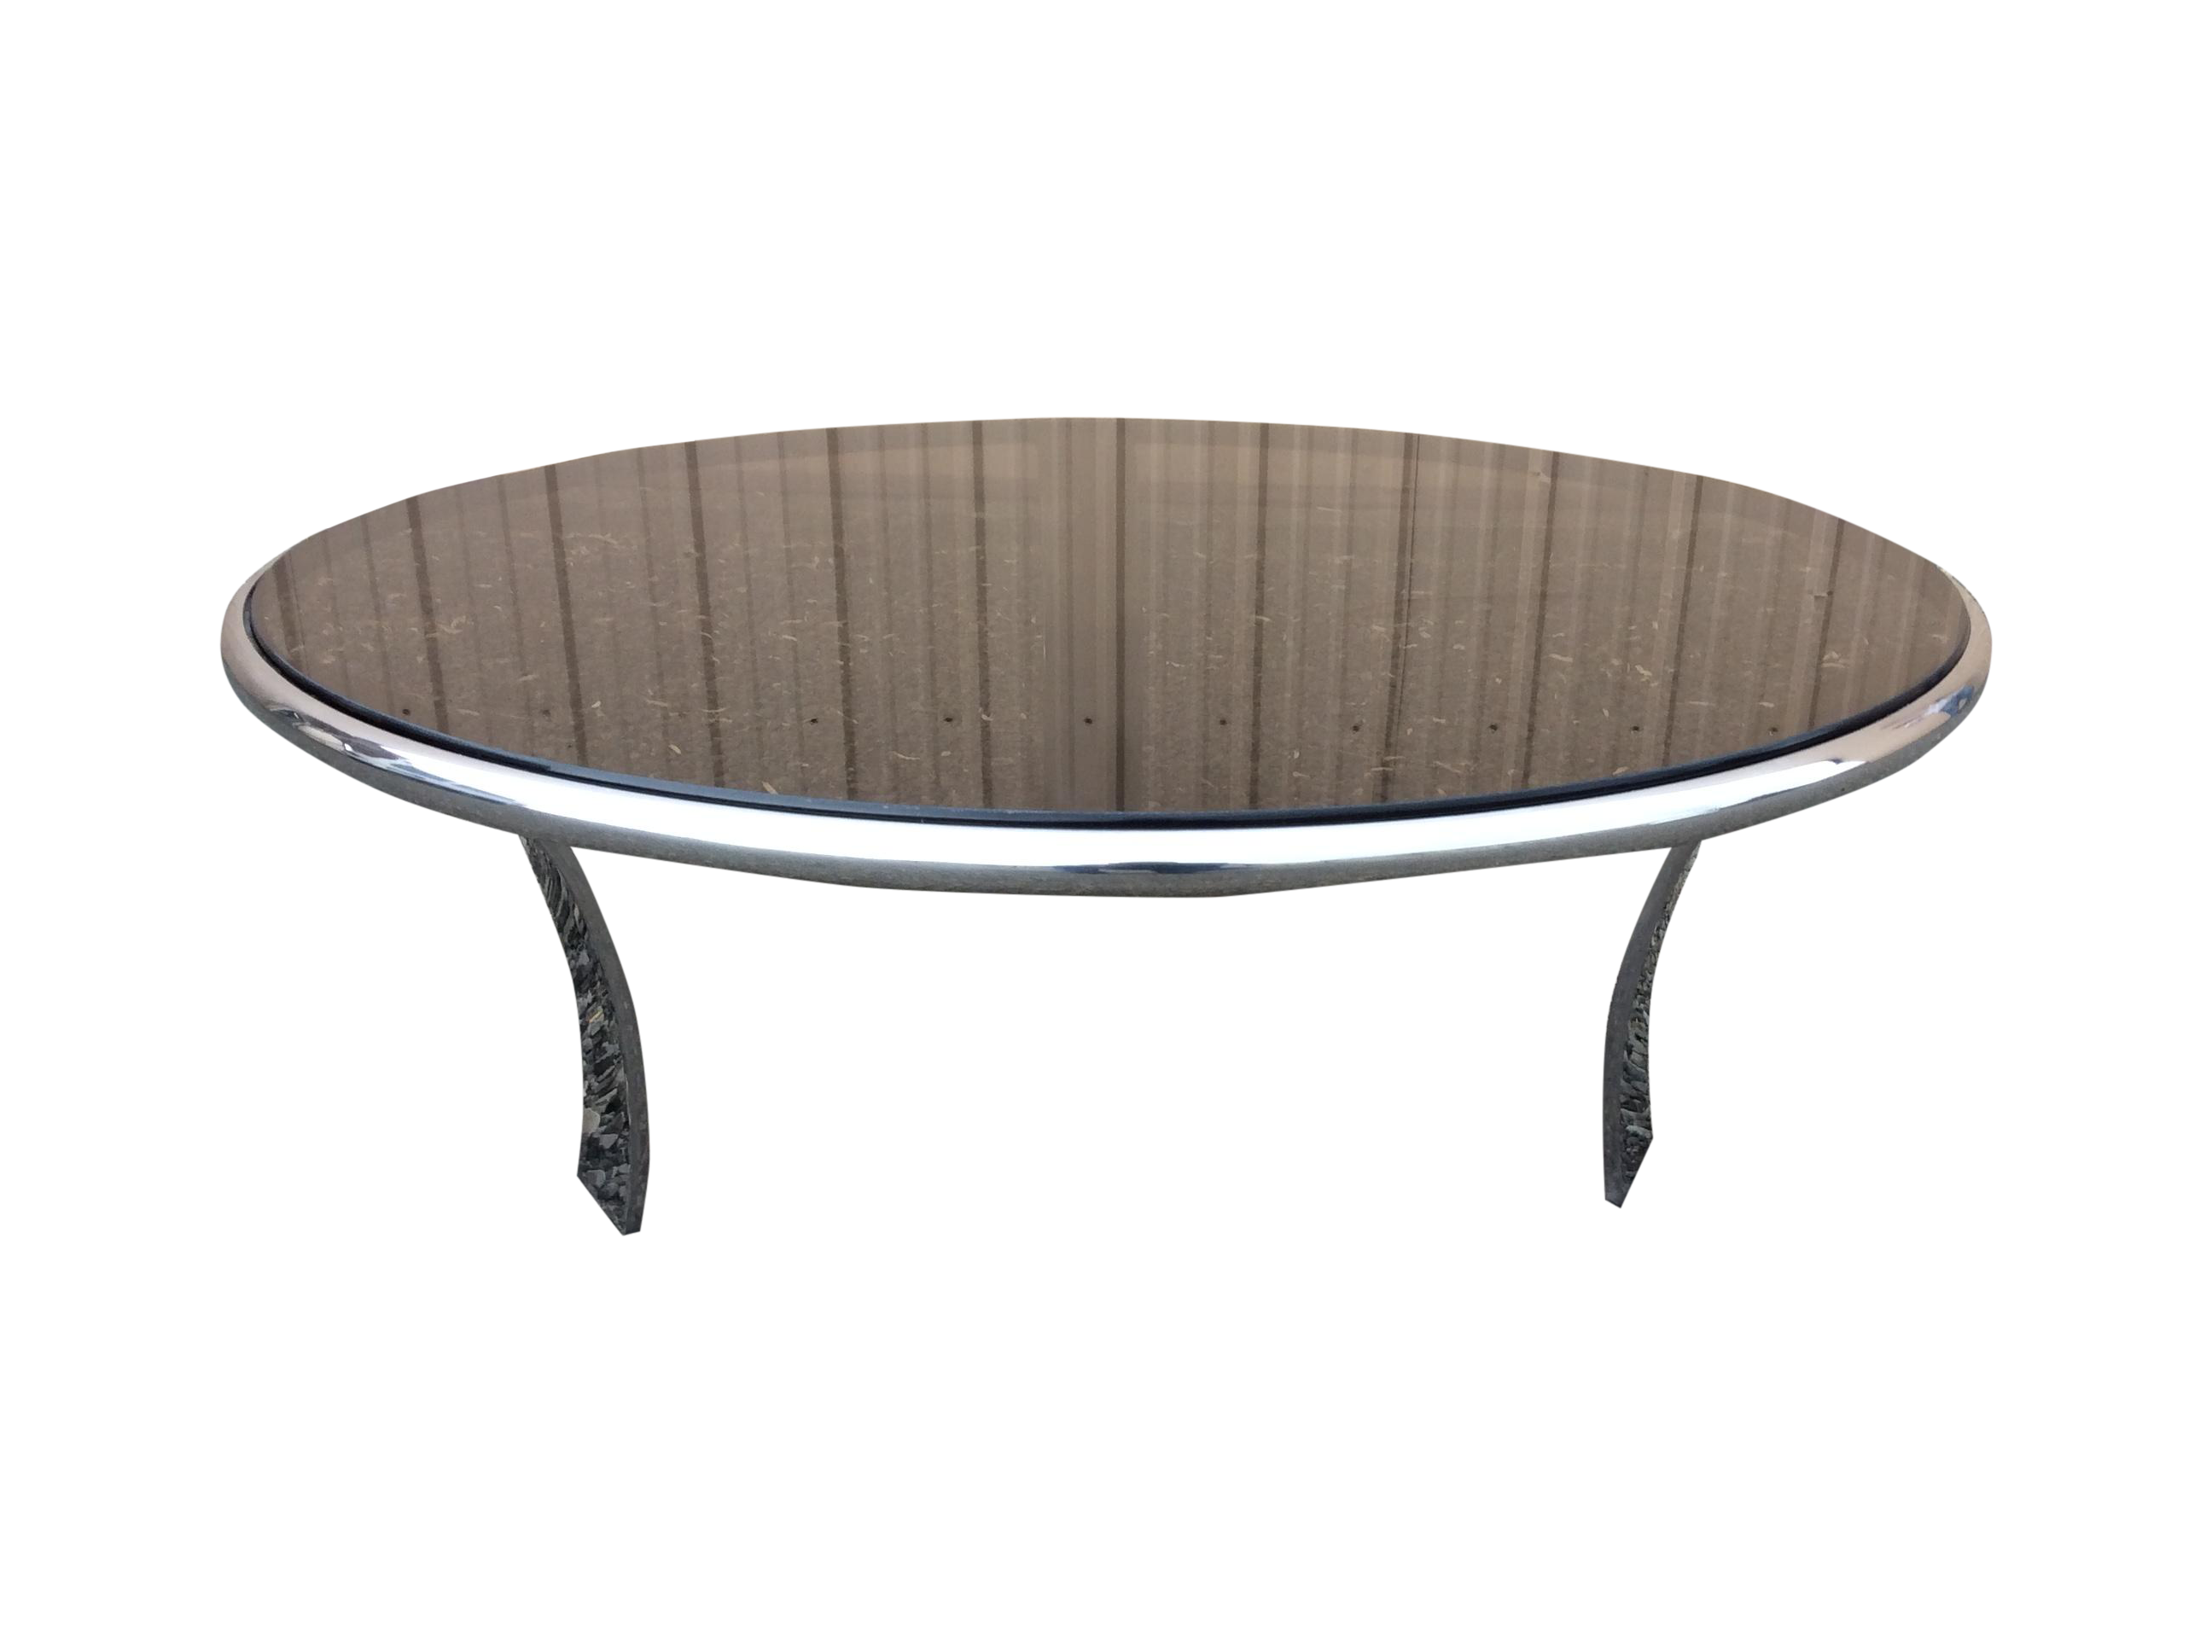 gently used steelcase furniture - save up to 40% at chairish